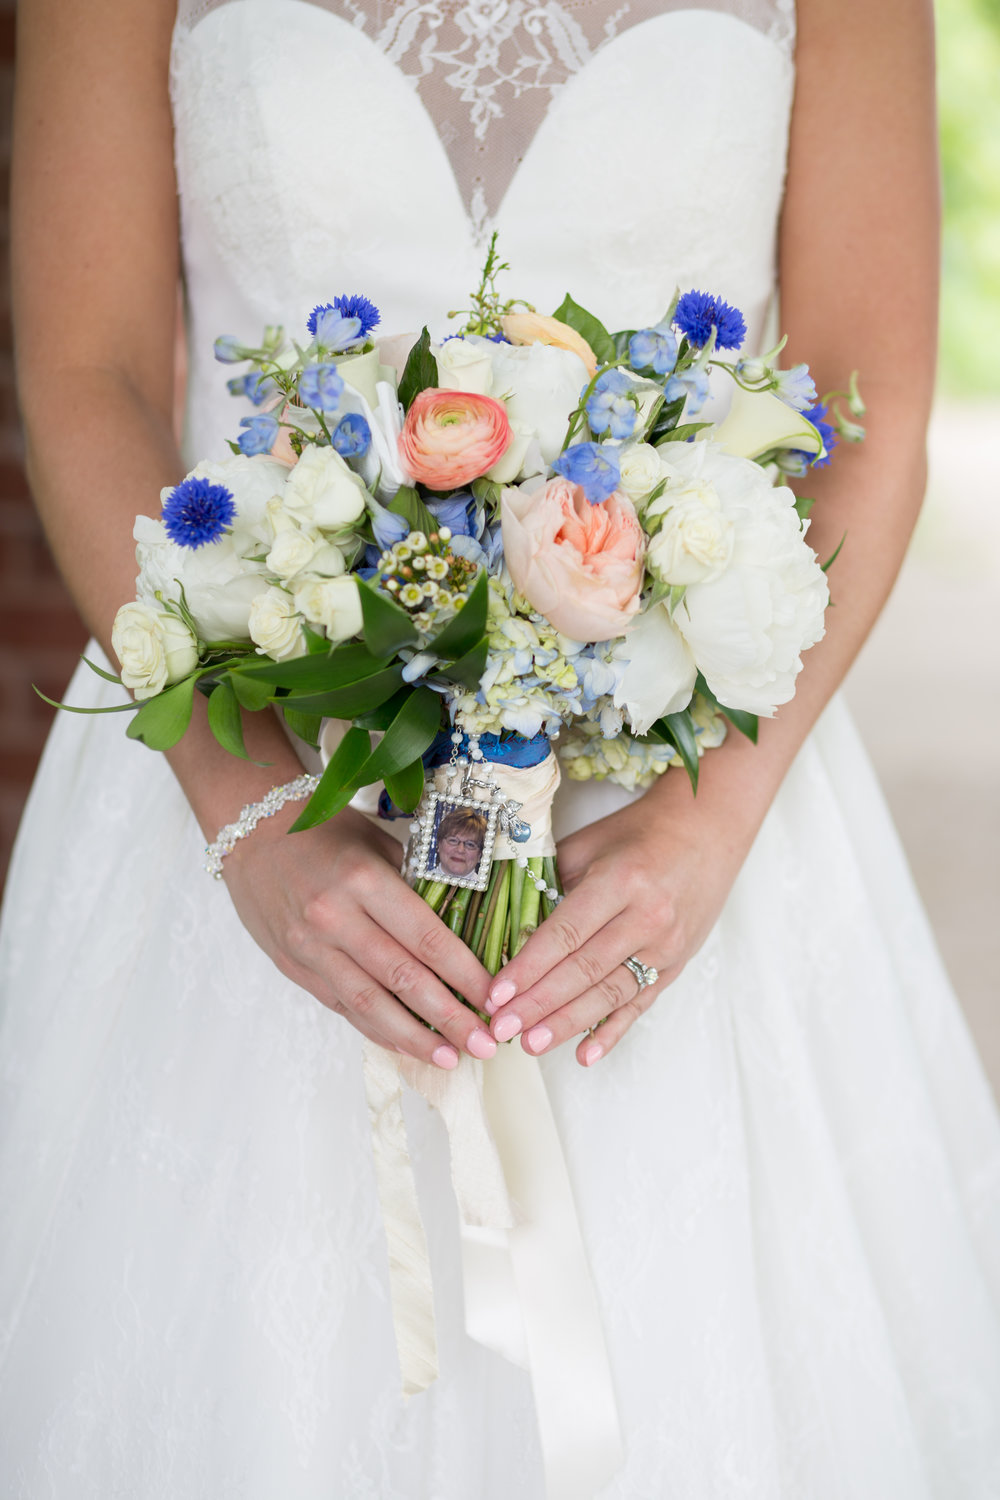 Teresa honored her mother by carrying a special picture charm on her bridal bouquet.